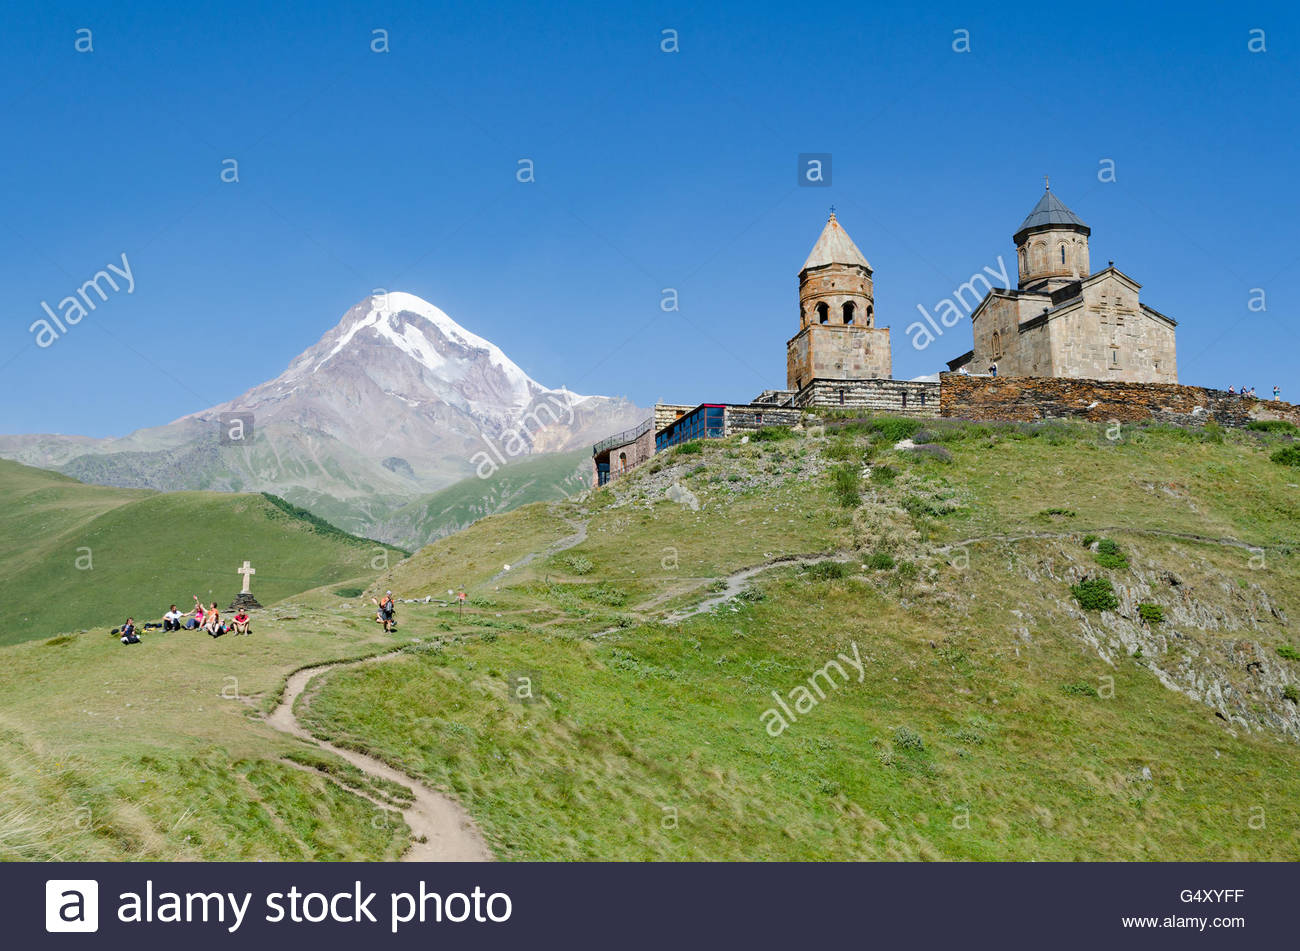 Georgia, Mzcheta-Mtianeti, Stepanzminda, Tsminda Sameba, monastery, Kasbek  in the background